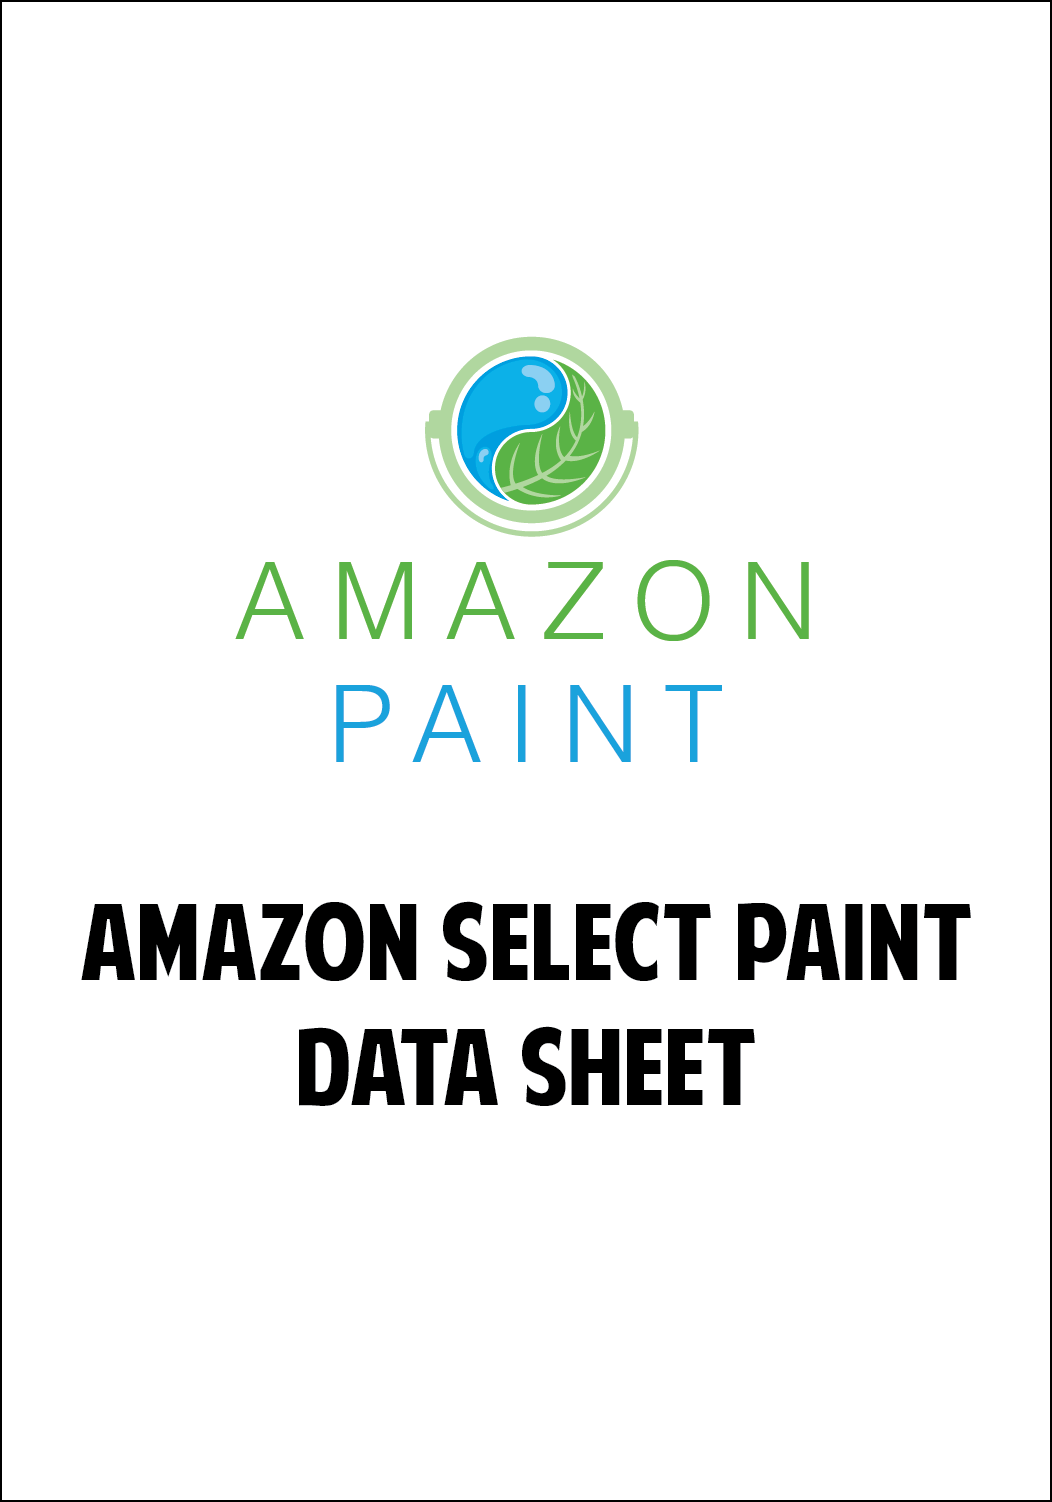 Amazon Select Paint Data Sheet